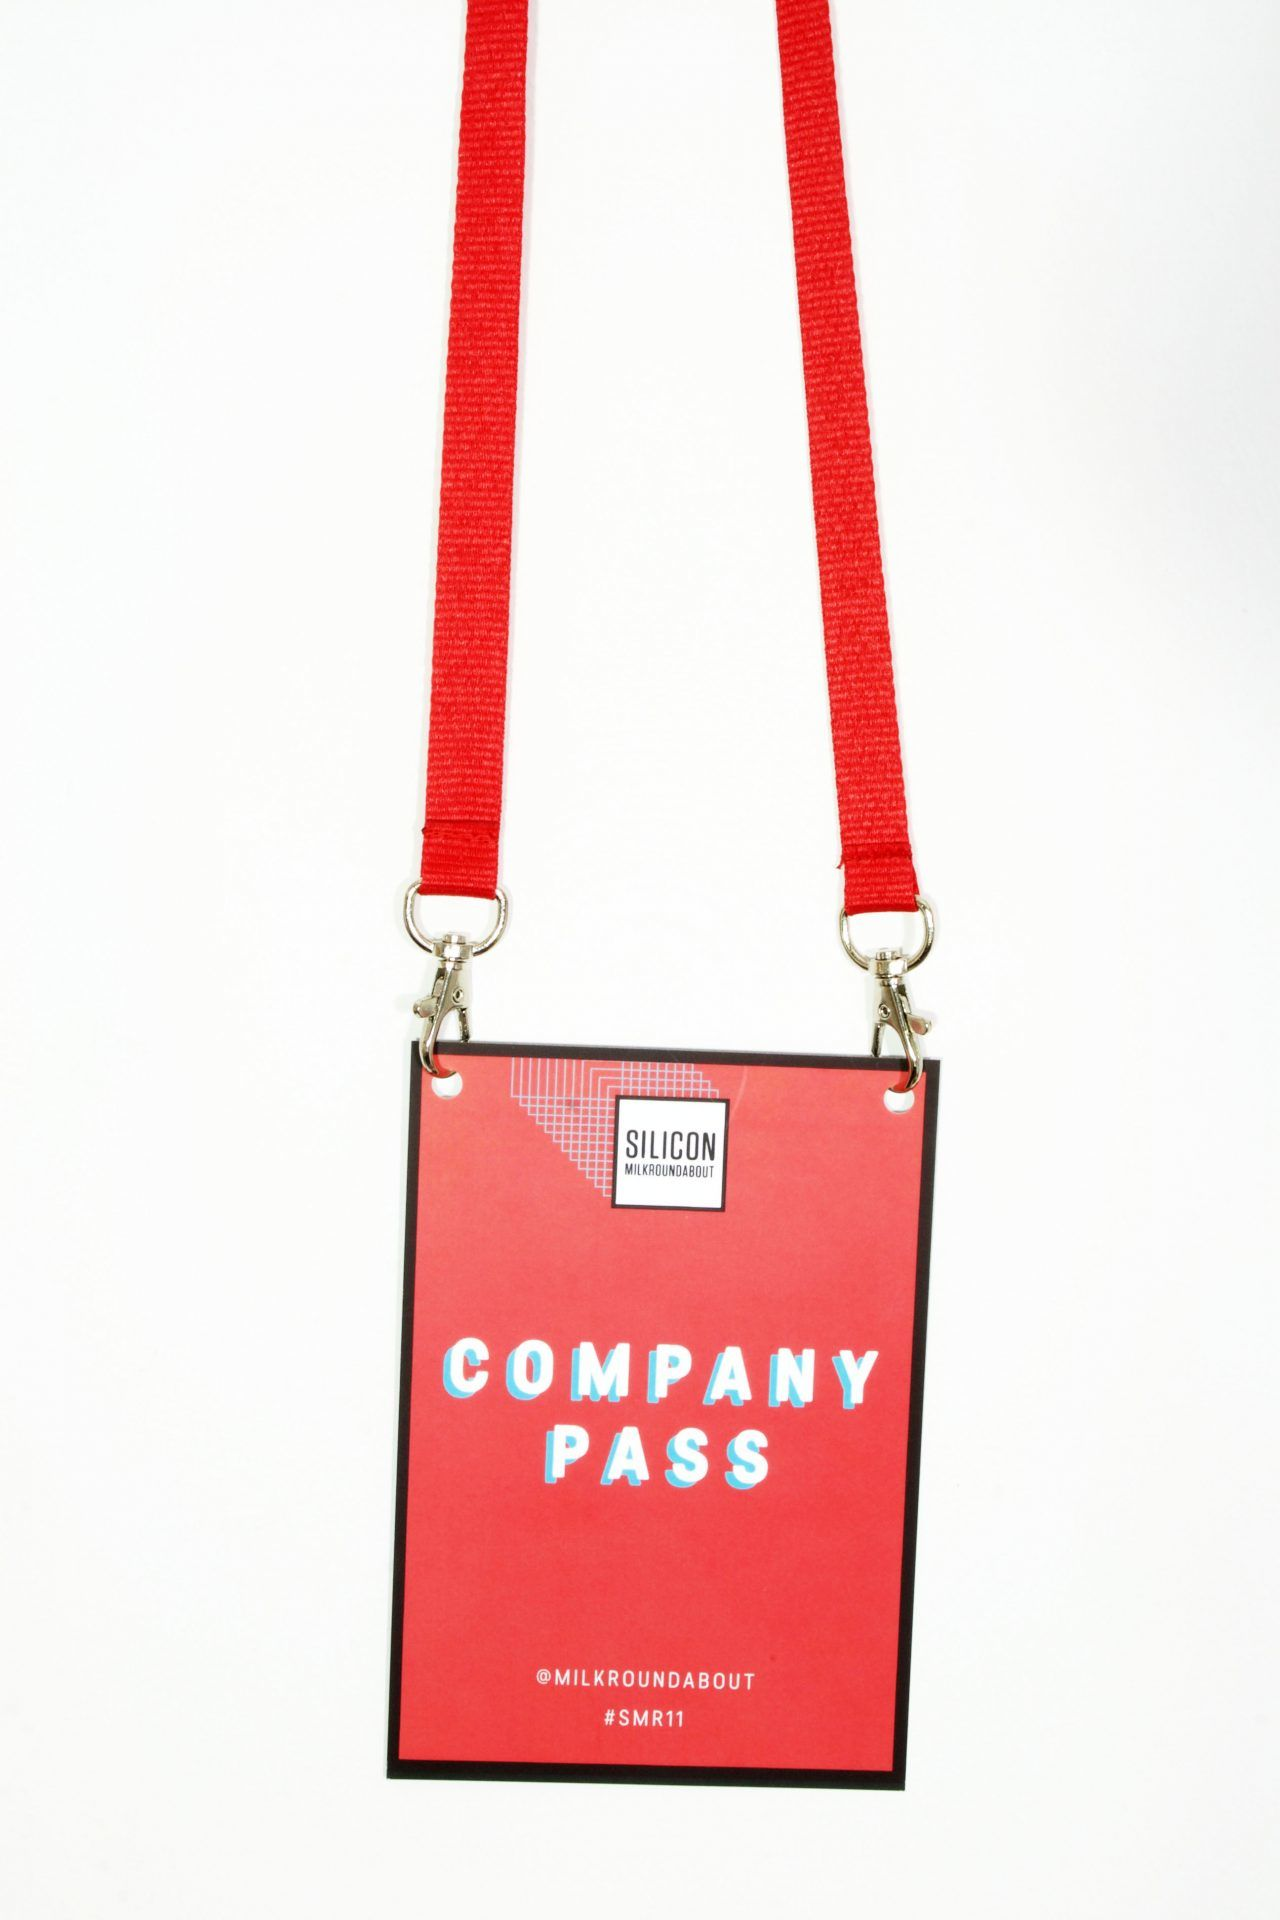 Buy Plain Red Double Ended Lanyards on Lanyards Direct Today!